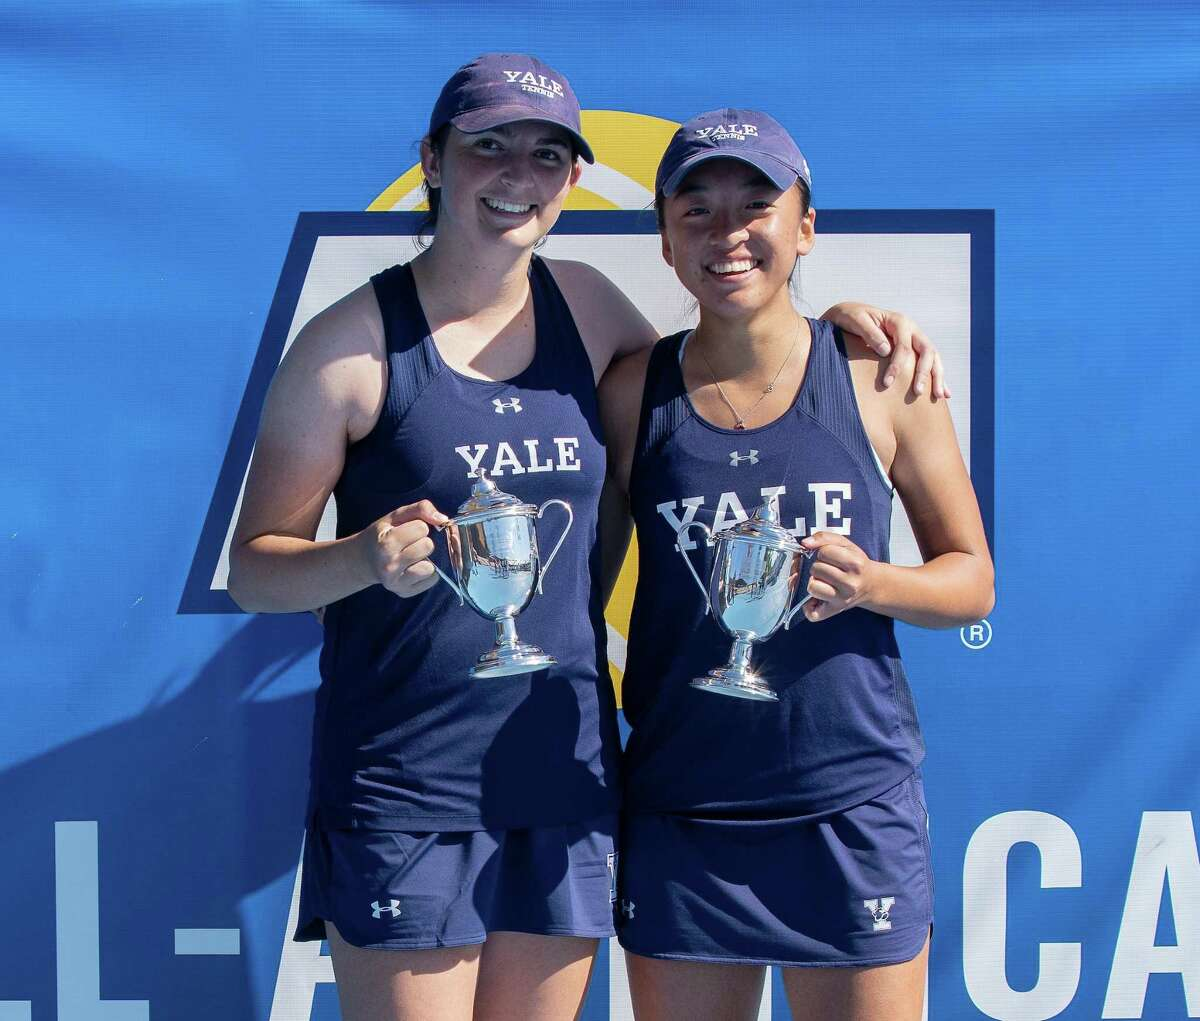 The Yale doubles team of Jessie Gong and Samantha Martinelli earned ITA All-American honors.